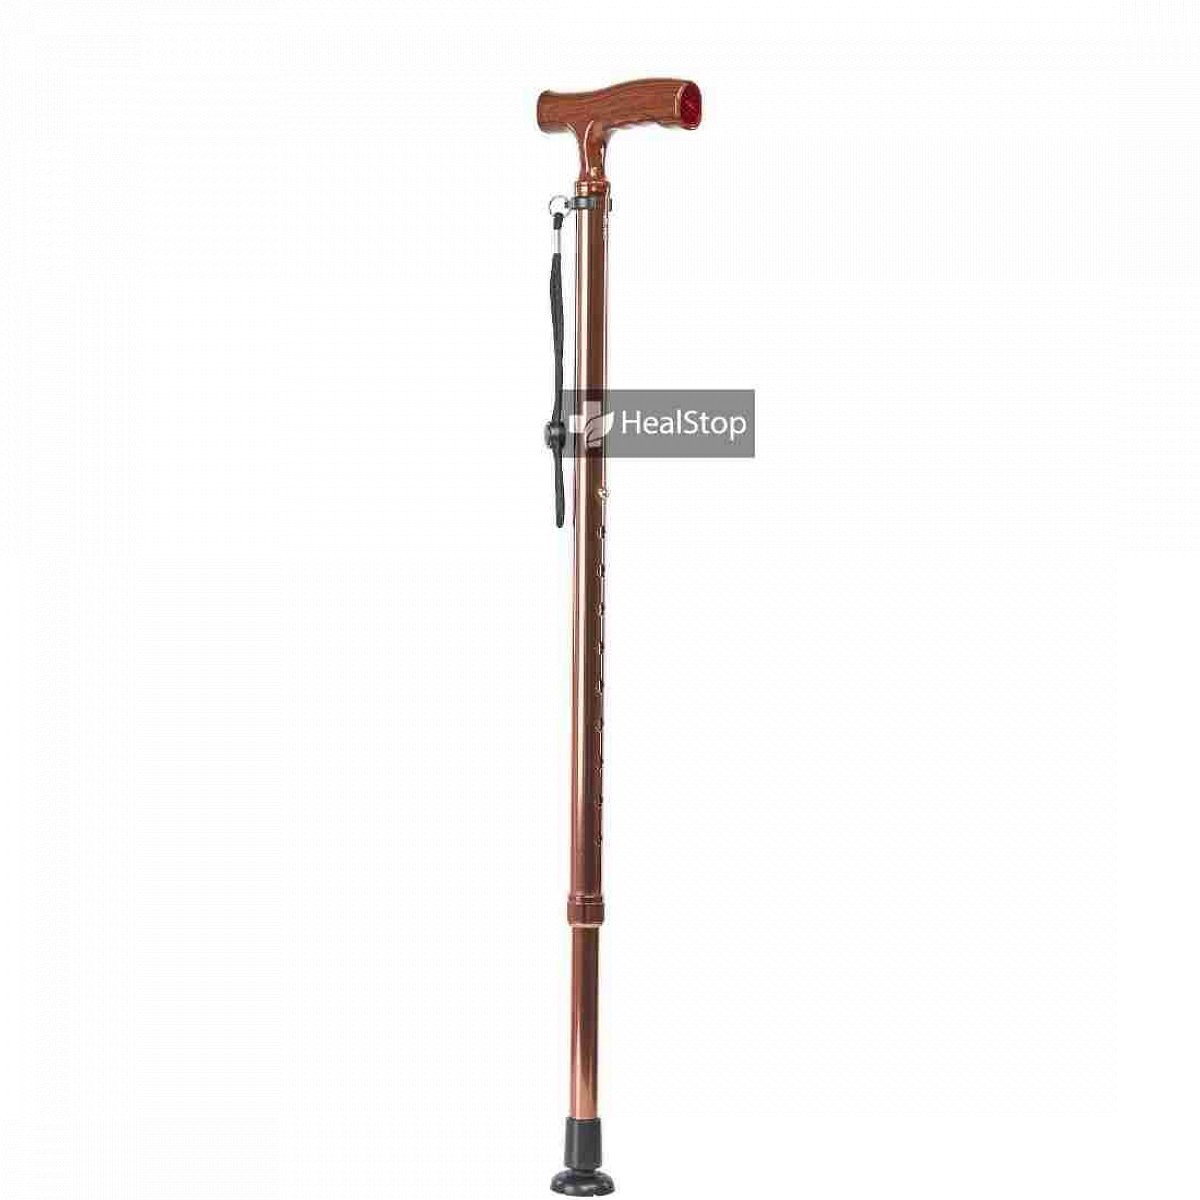 Straight Shank Handle Cane M701 (Champagne Brown)